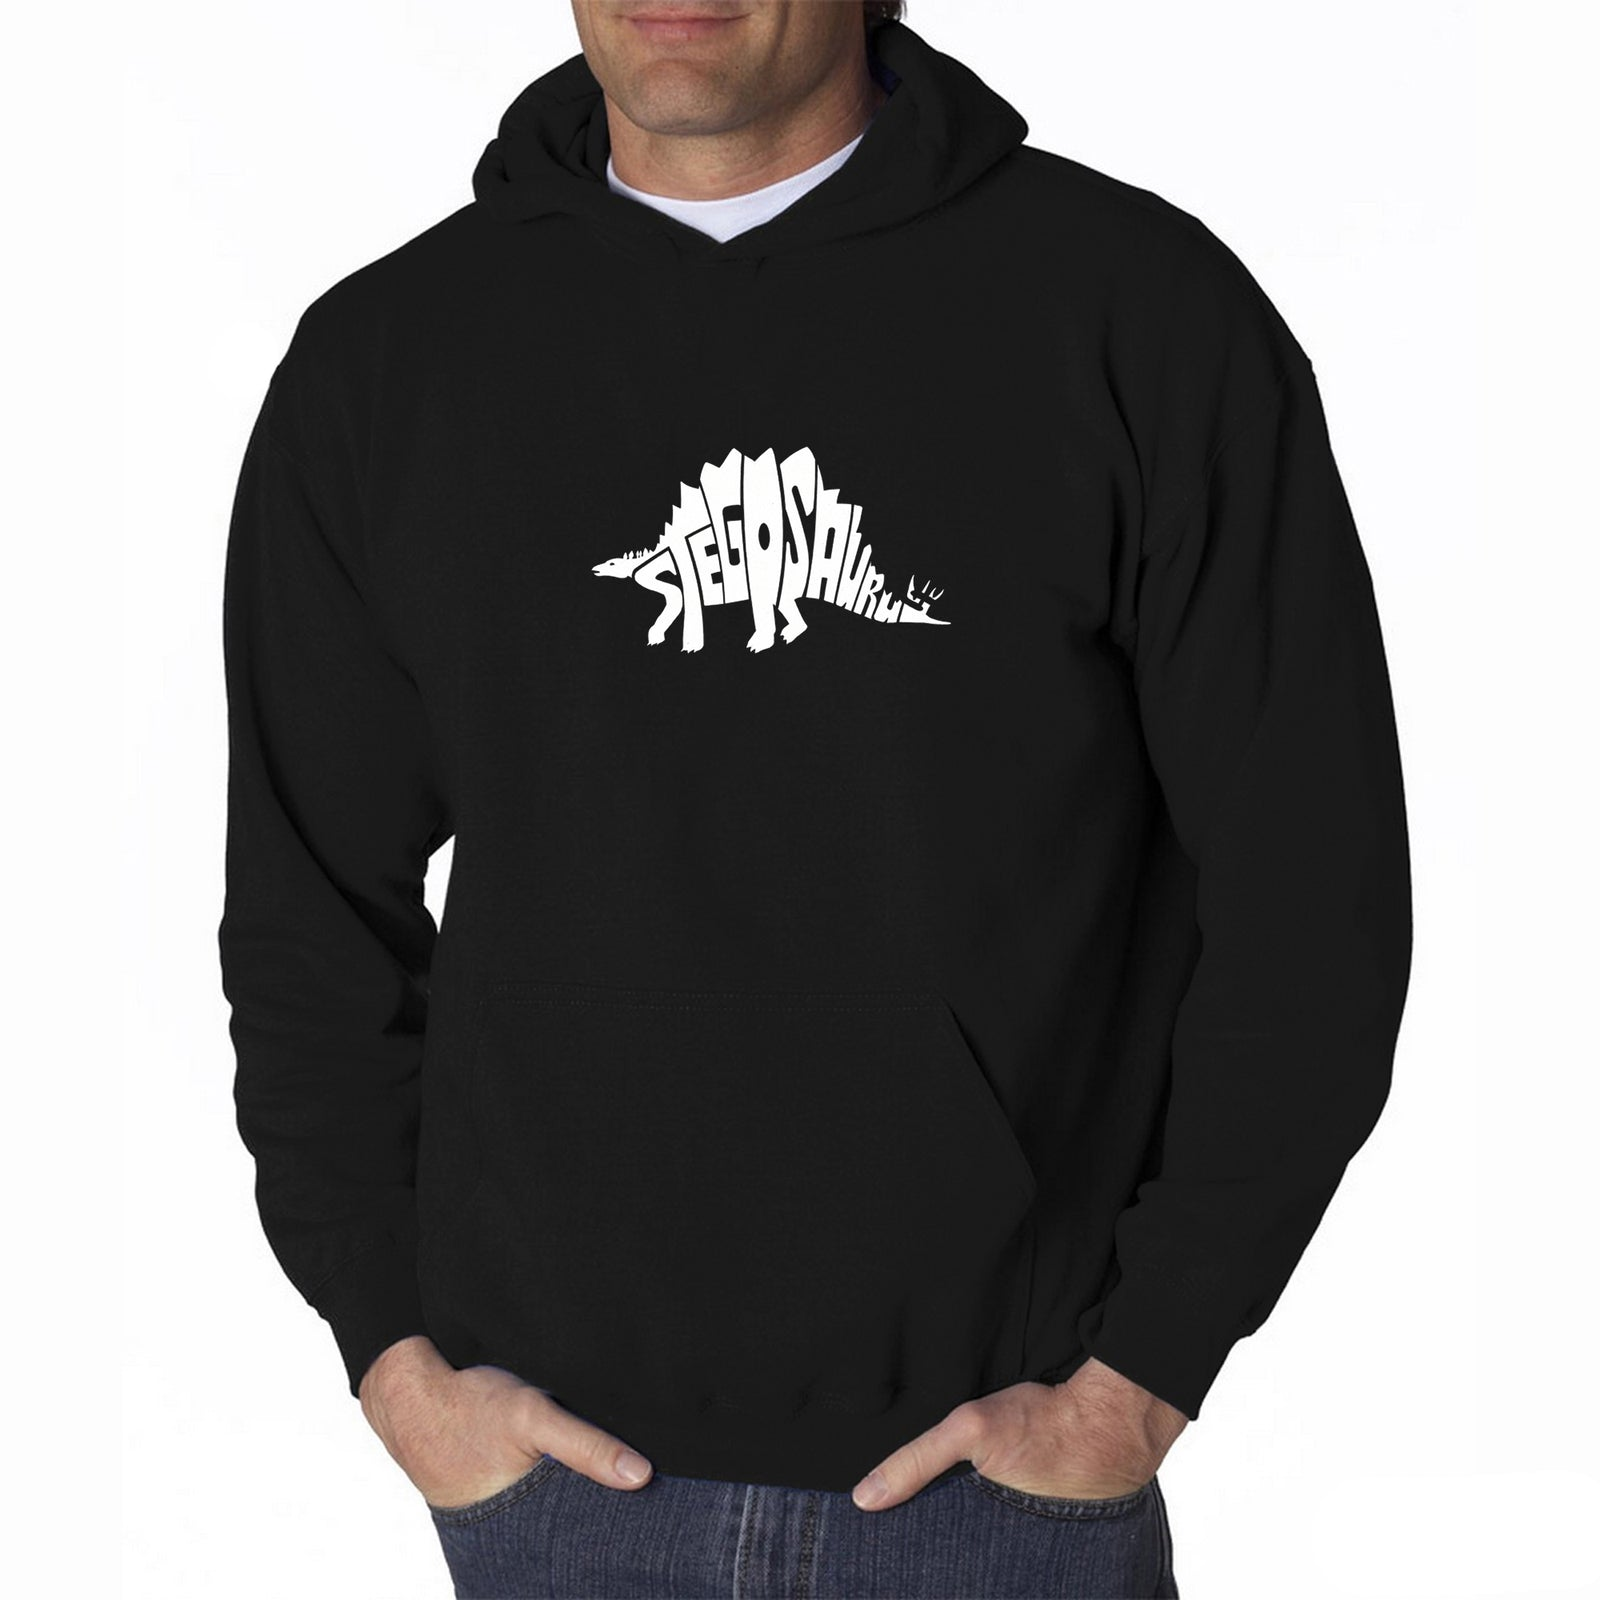 Men's Hooded Sweatshirt - STEGOSAURUS